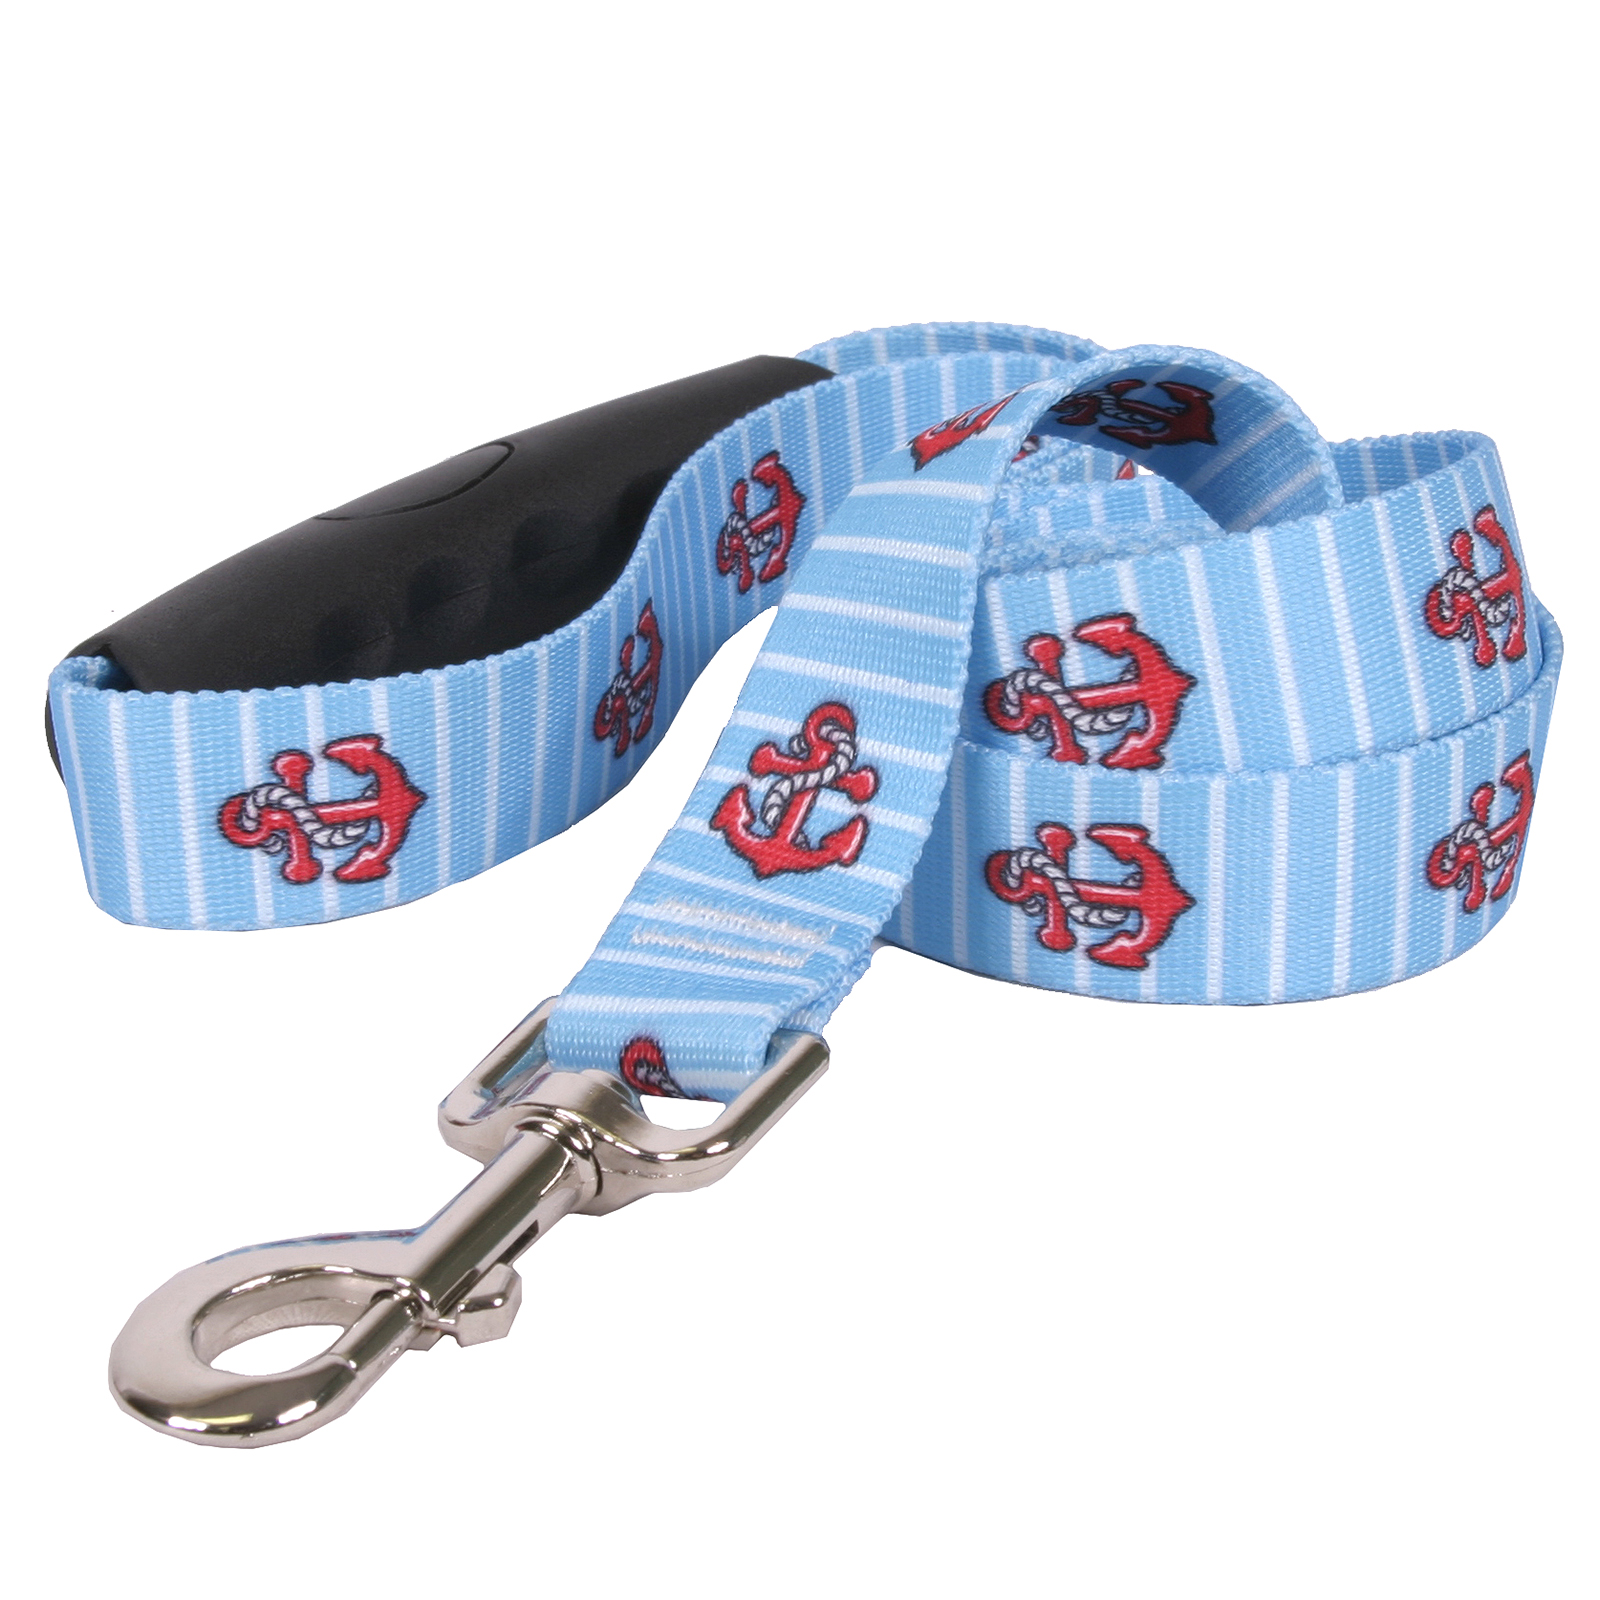 Anchors on Blue Stripes EZ-Lead